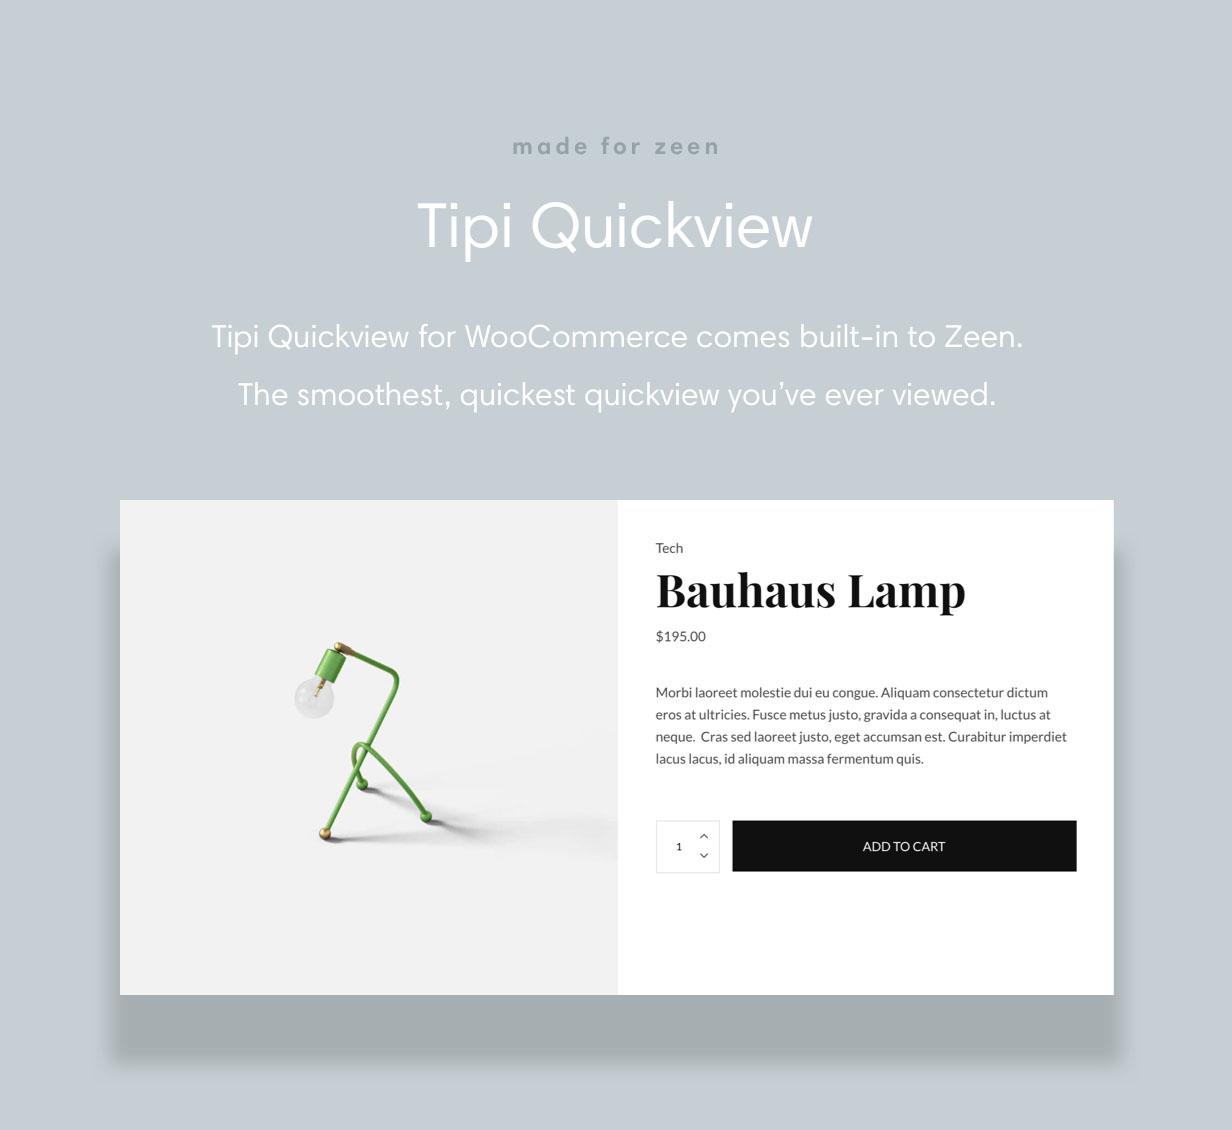 Quickview for WooCommerce